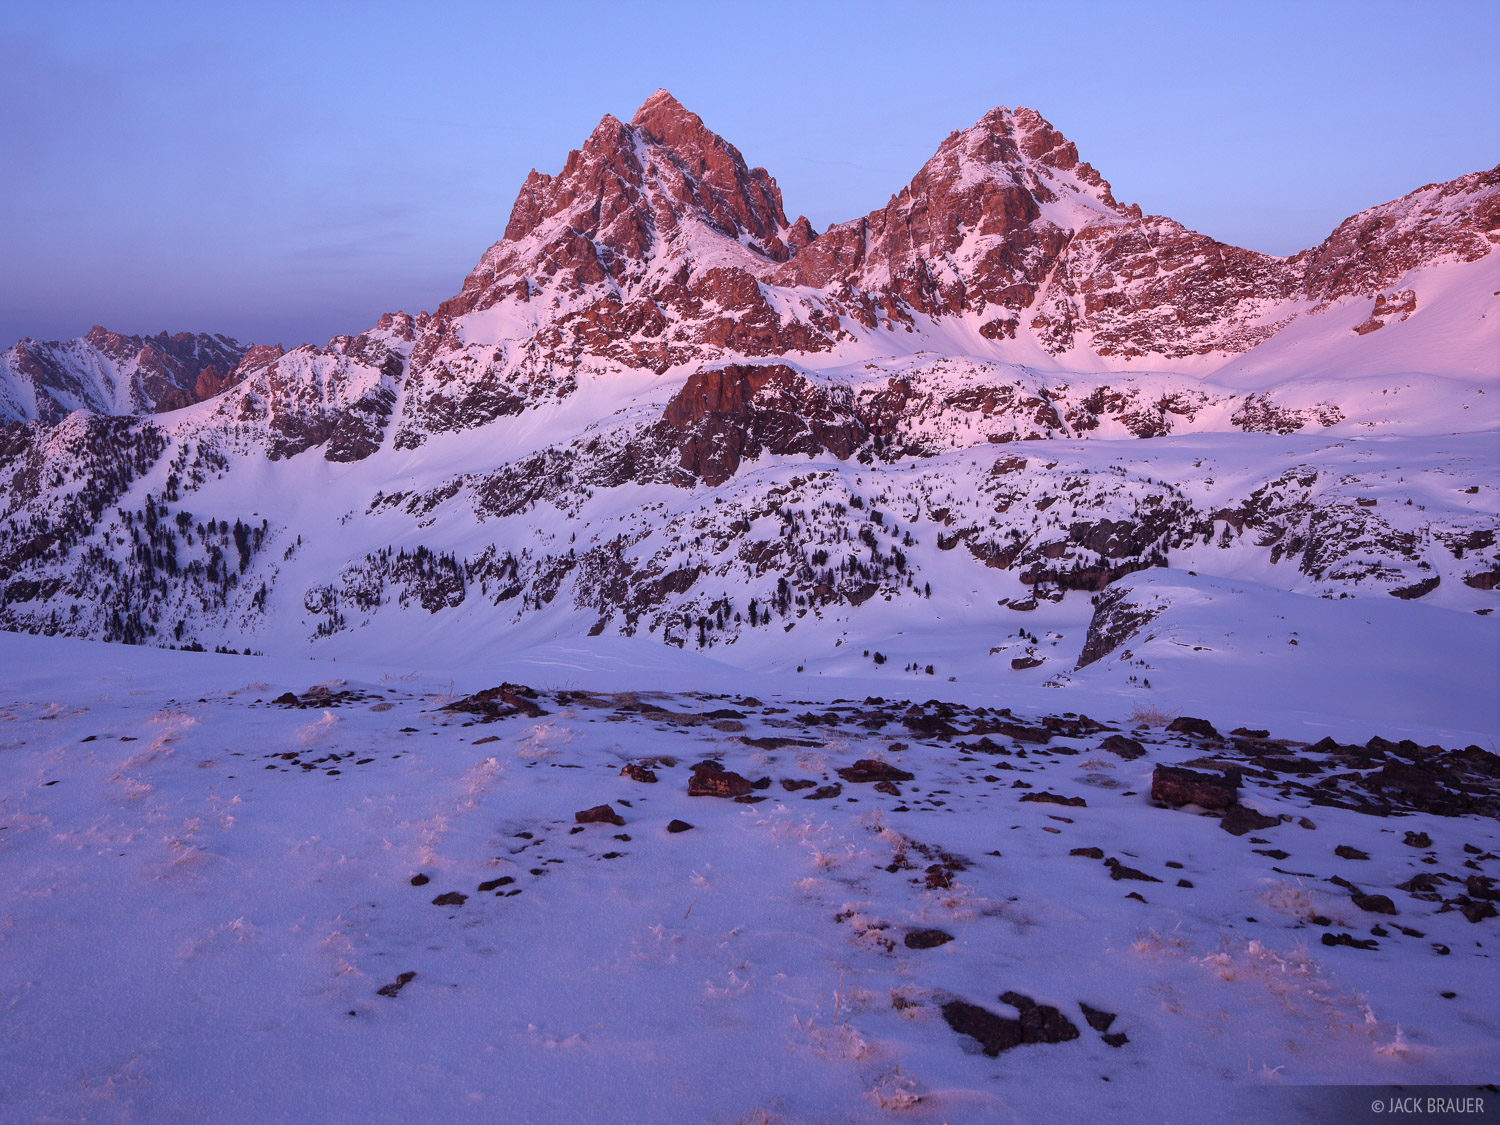 alpenglow, Tetons, Wyoming, winter, sunset, hurricane pass, Grand Teton National Park, Grand Teton, photo